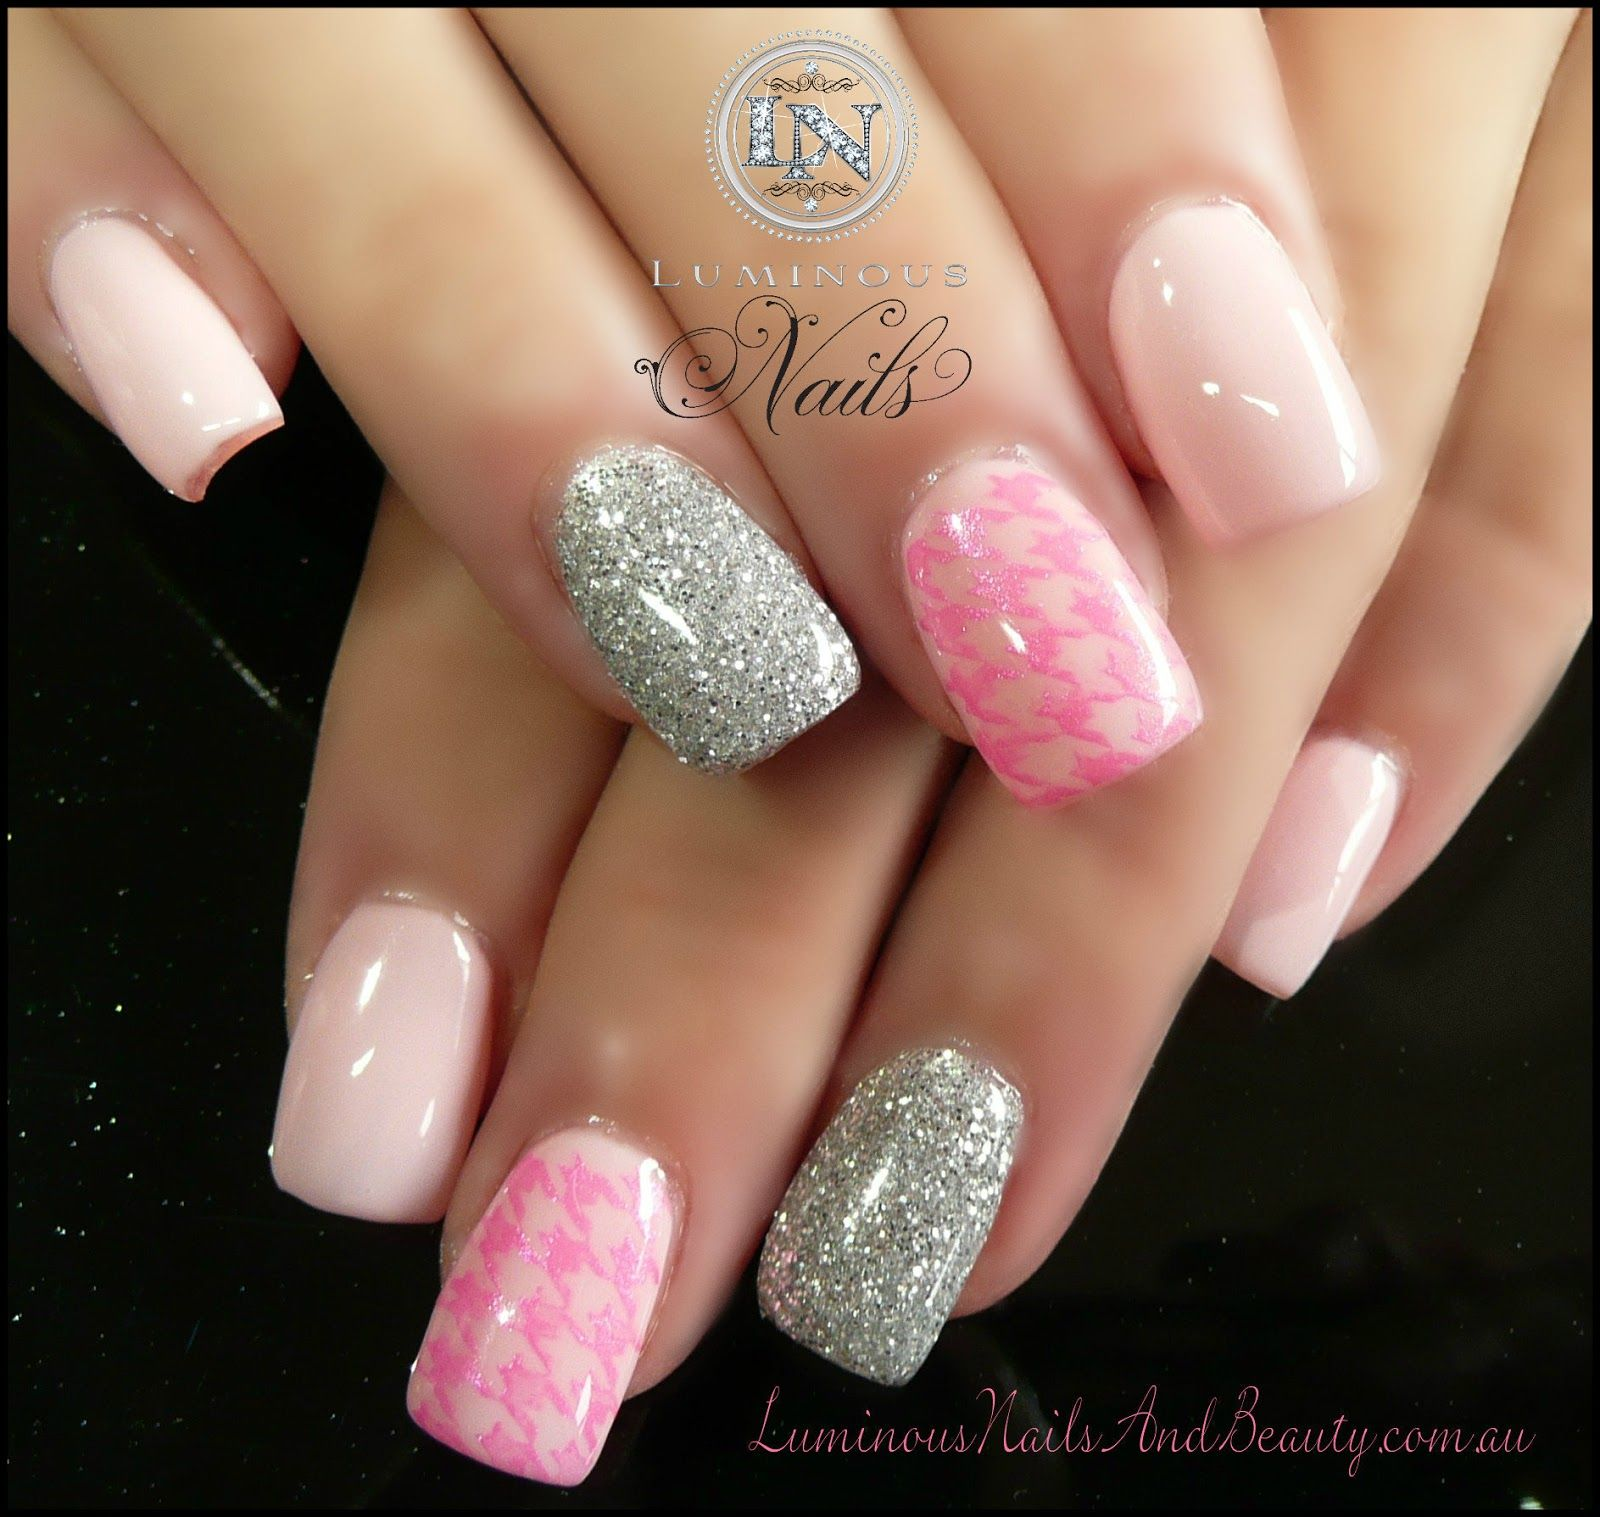 20 pretty nail designs for this new season fashion diva design 20 pretty nail designs for this new season prinsesfo Images